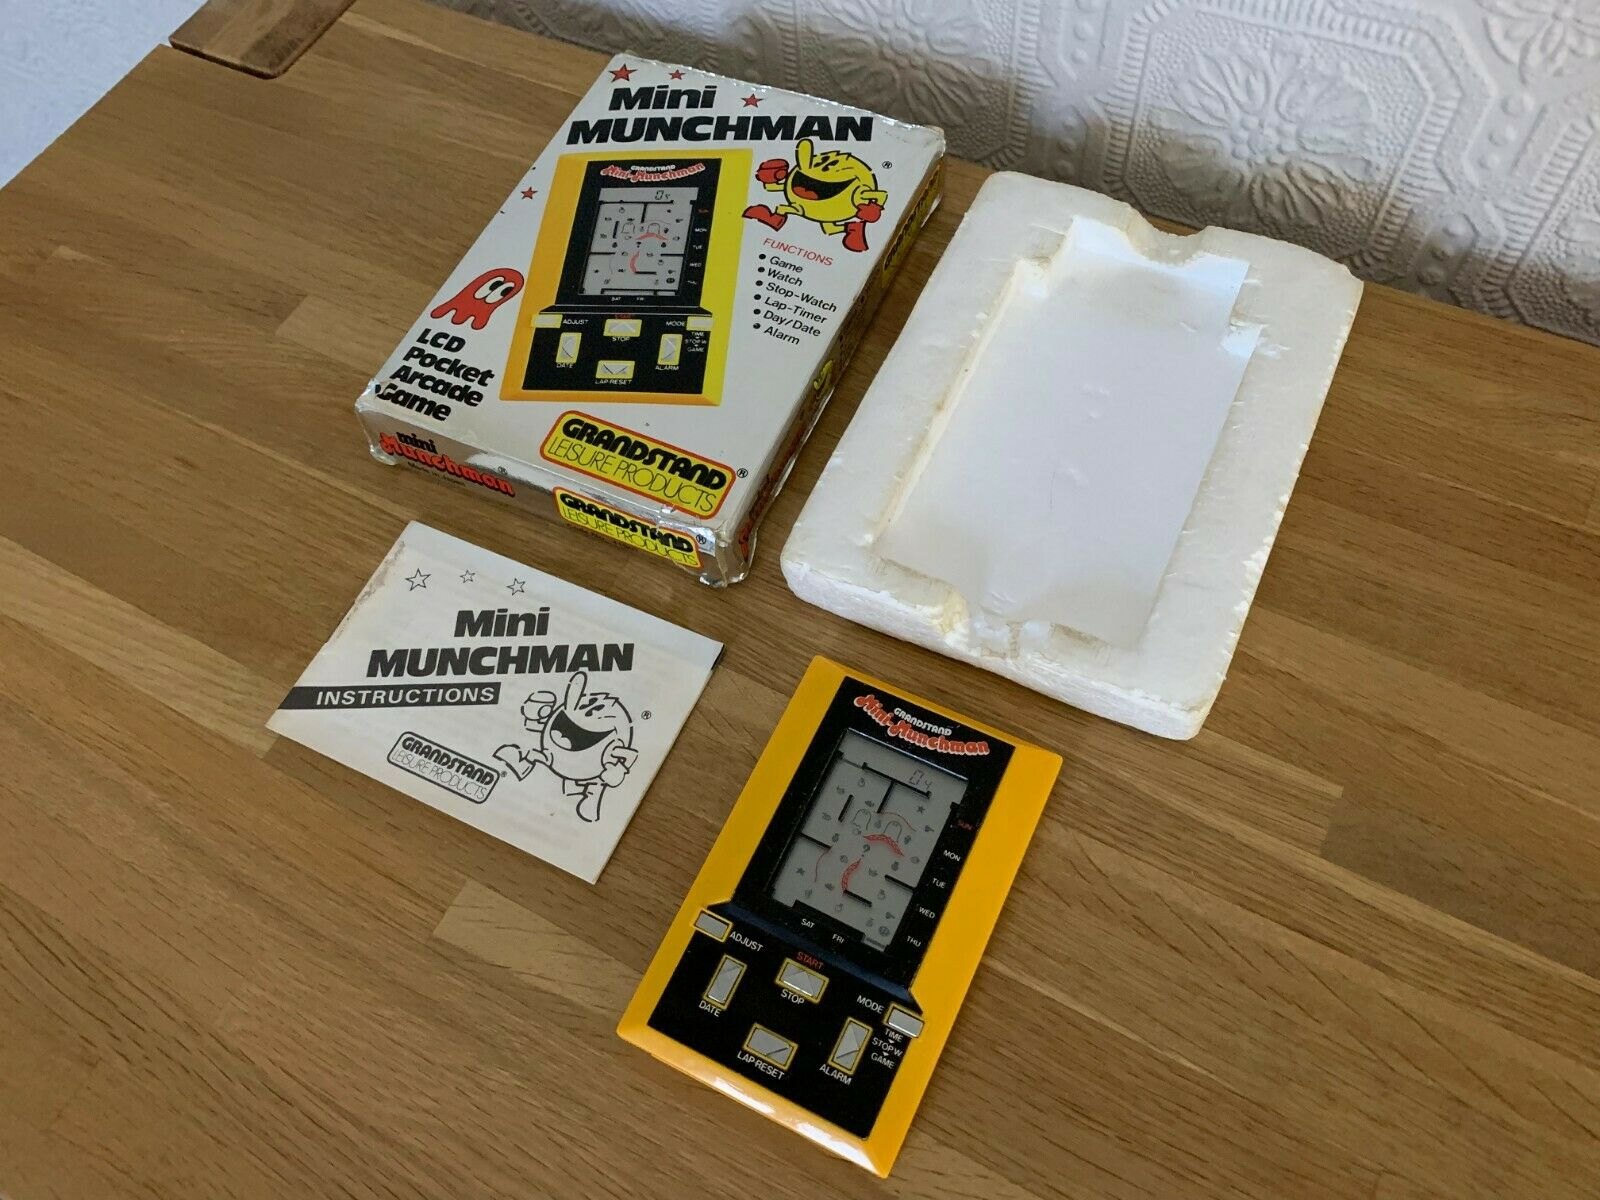 Boxed 1981 Vintage Grandstand Mini Munchman LCD Handheld Electronic Game in VGC.